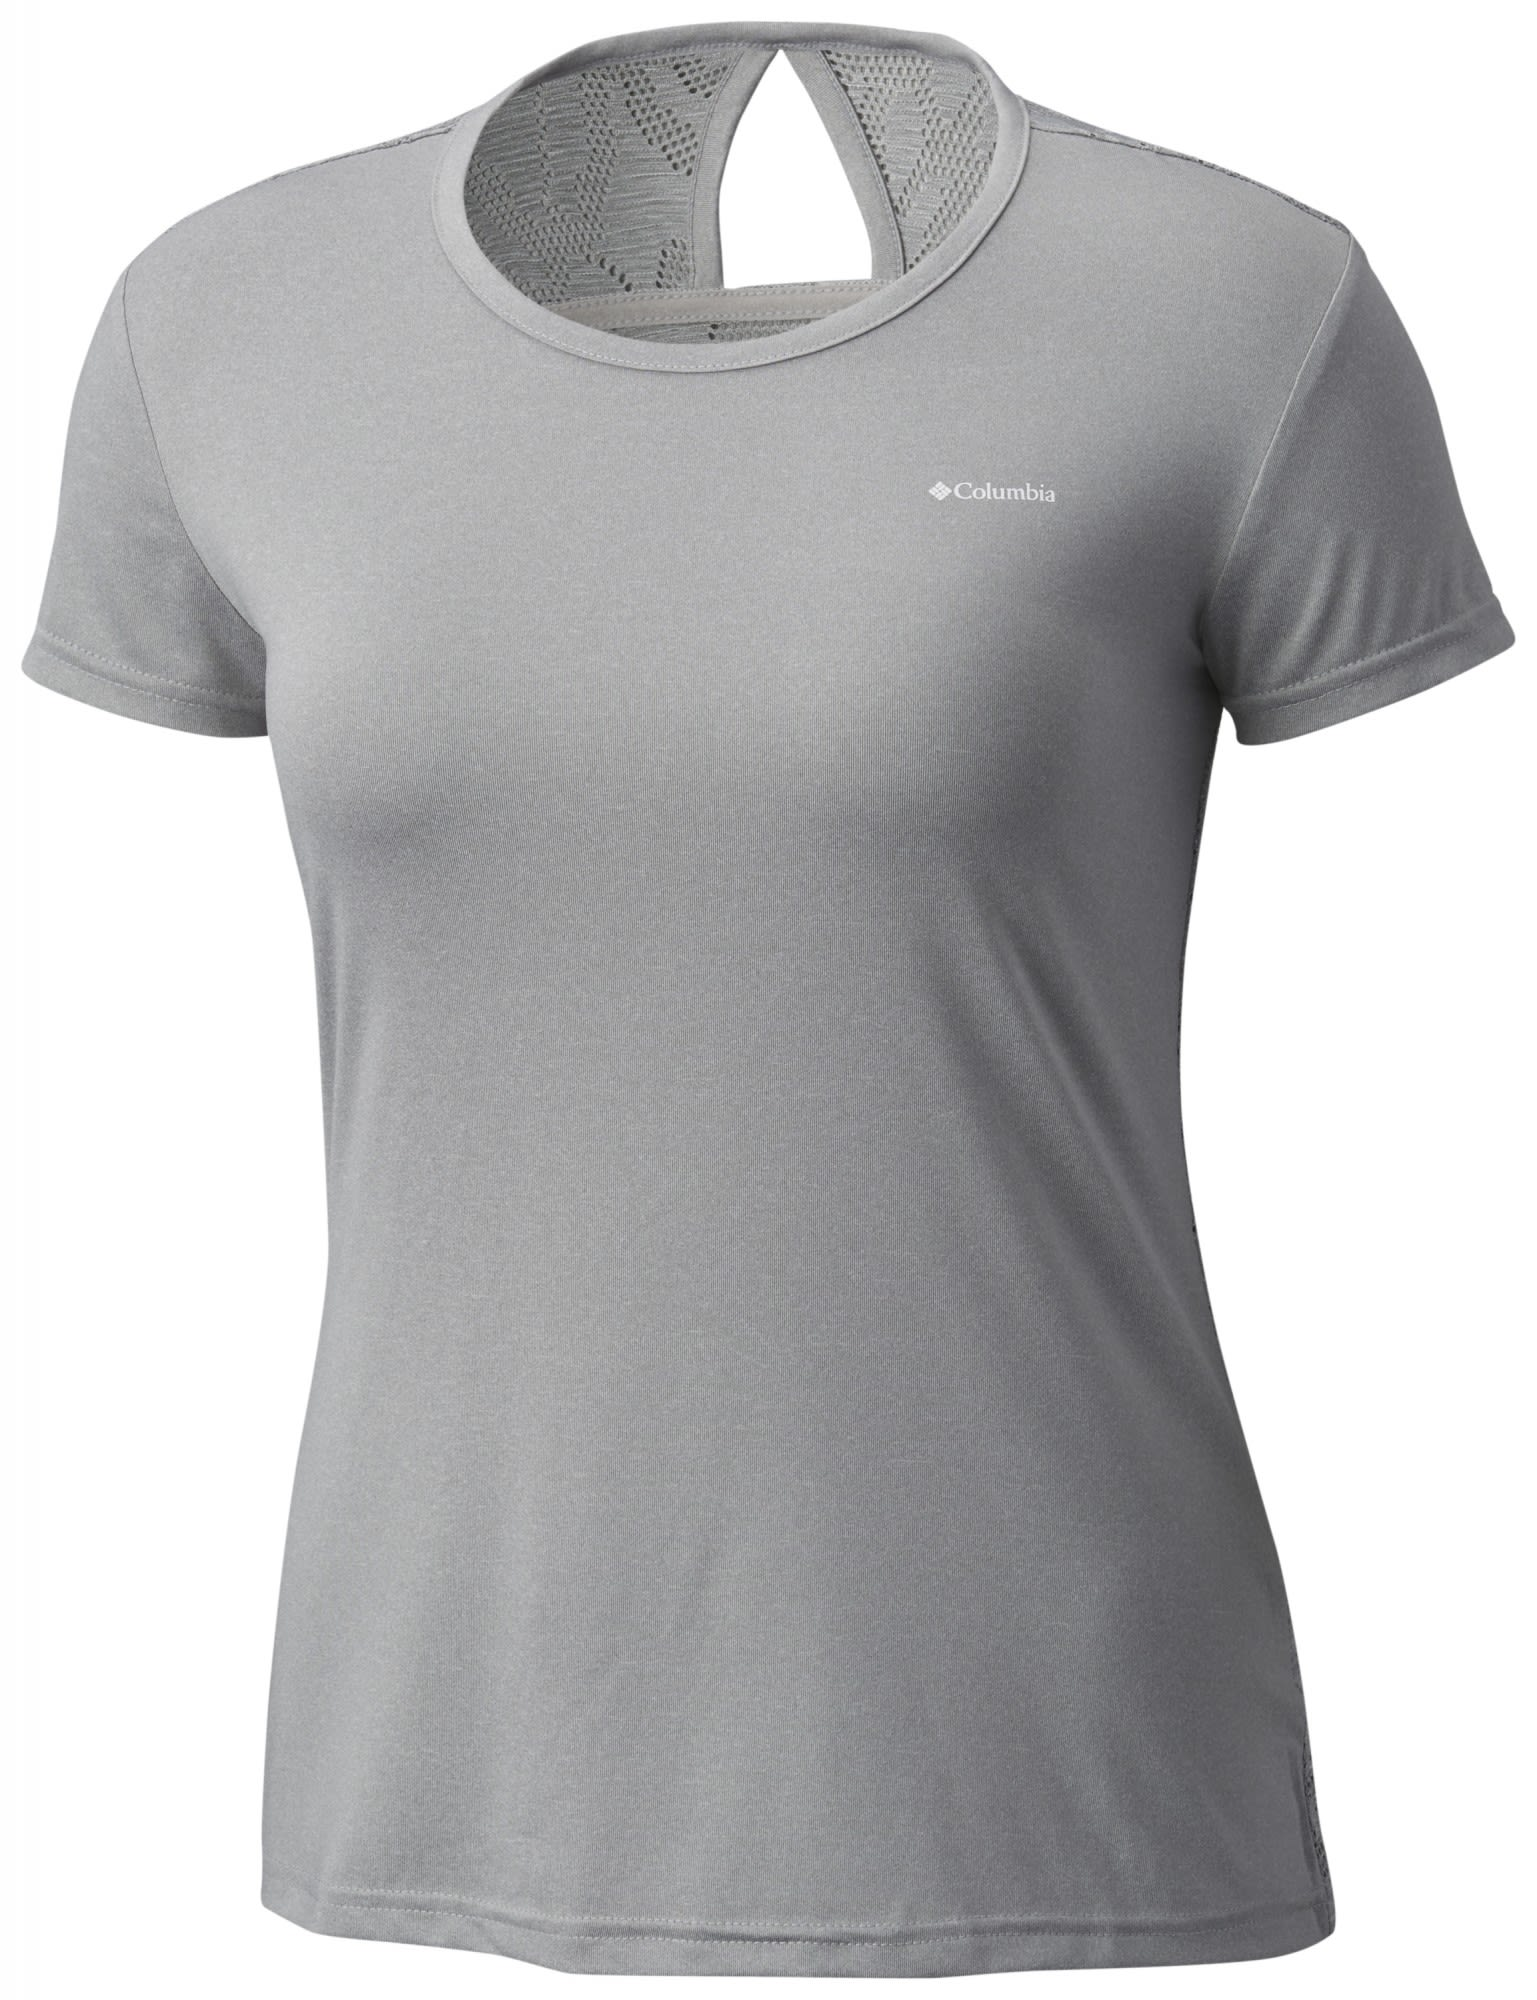 Columbia Peak TO Point Novelty Short Sleeve Shirt Grau, Female Kurzarm-Shirt, XS